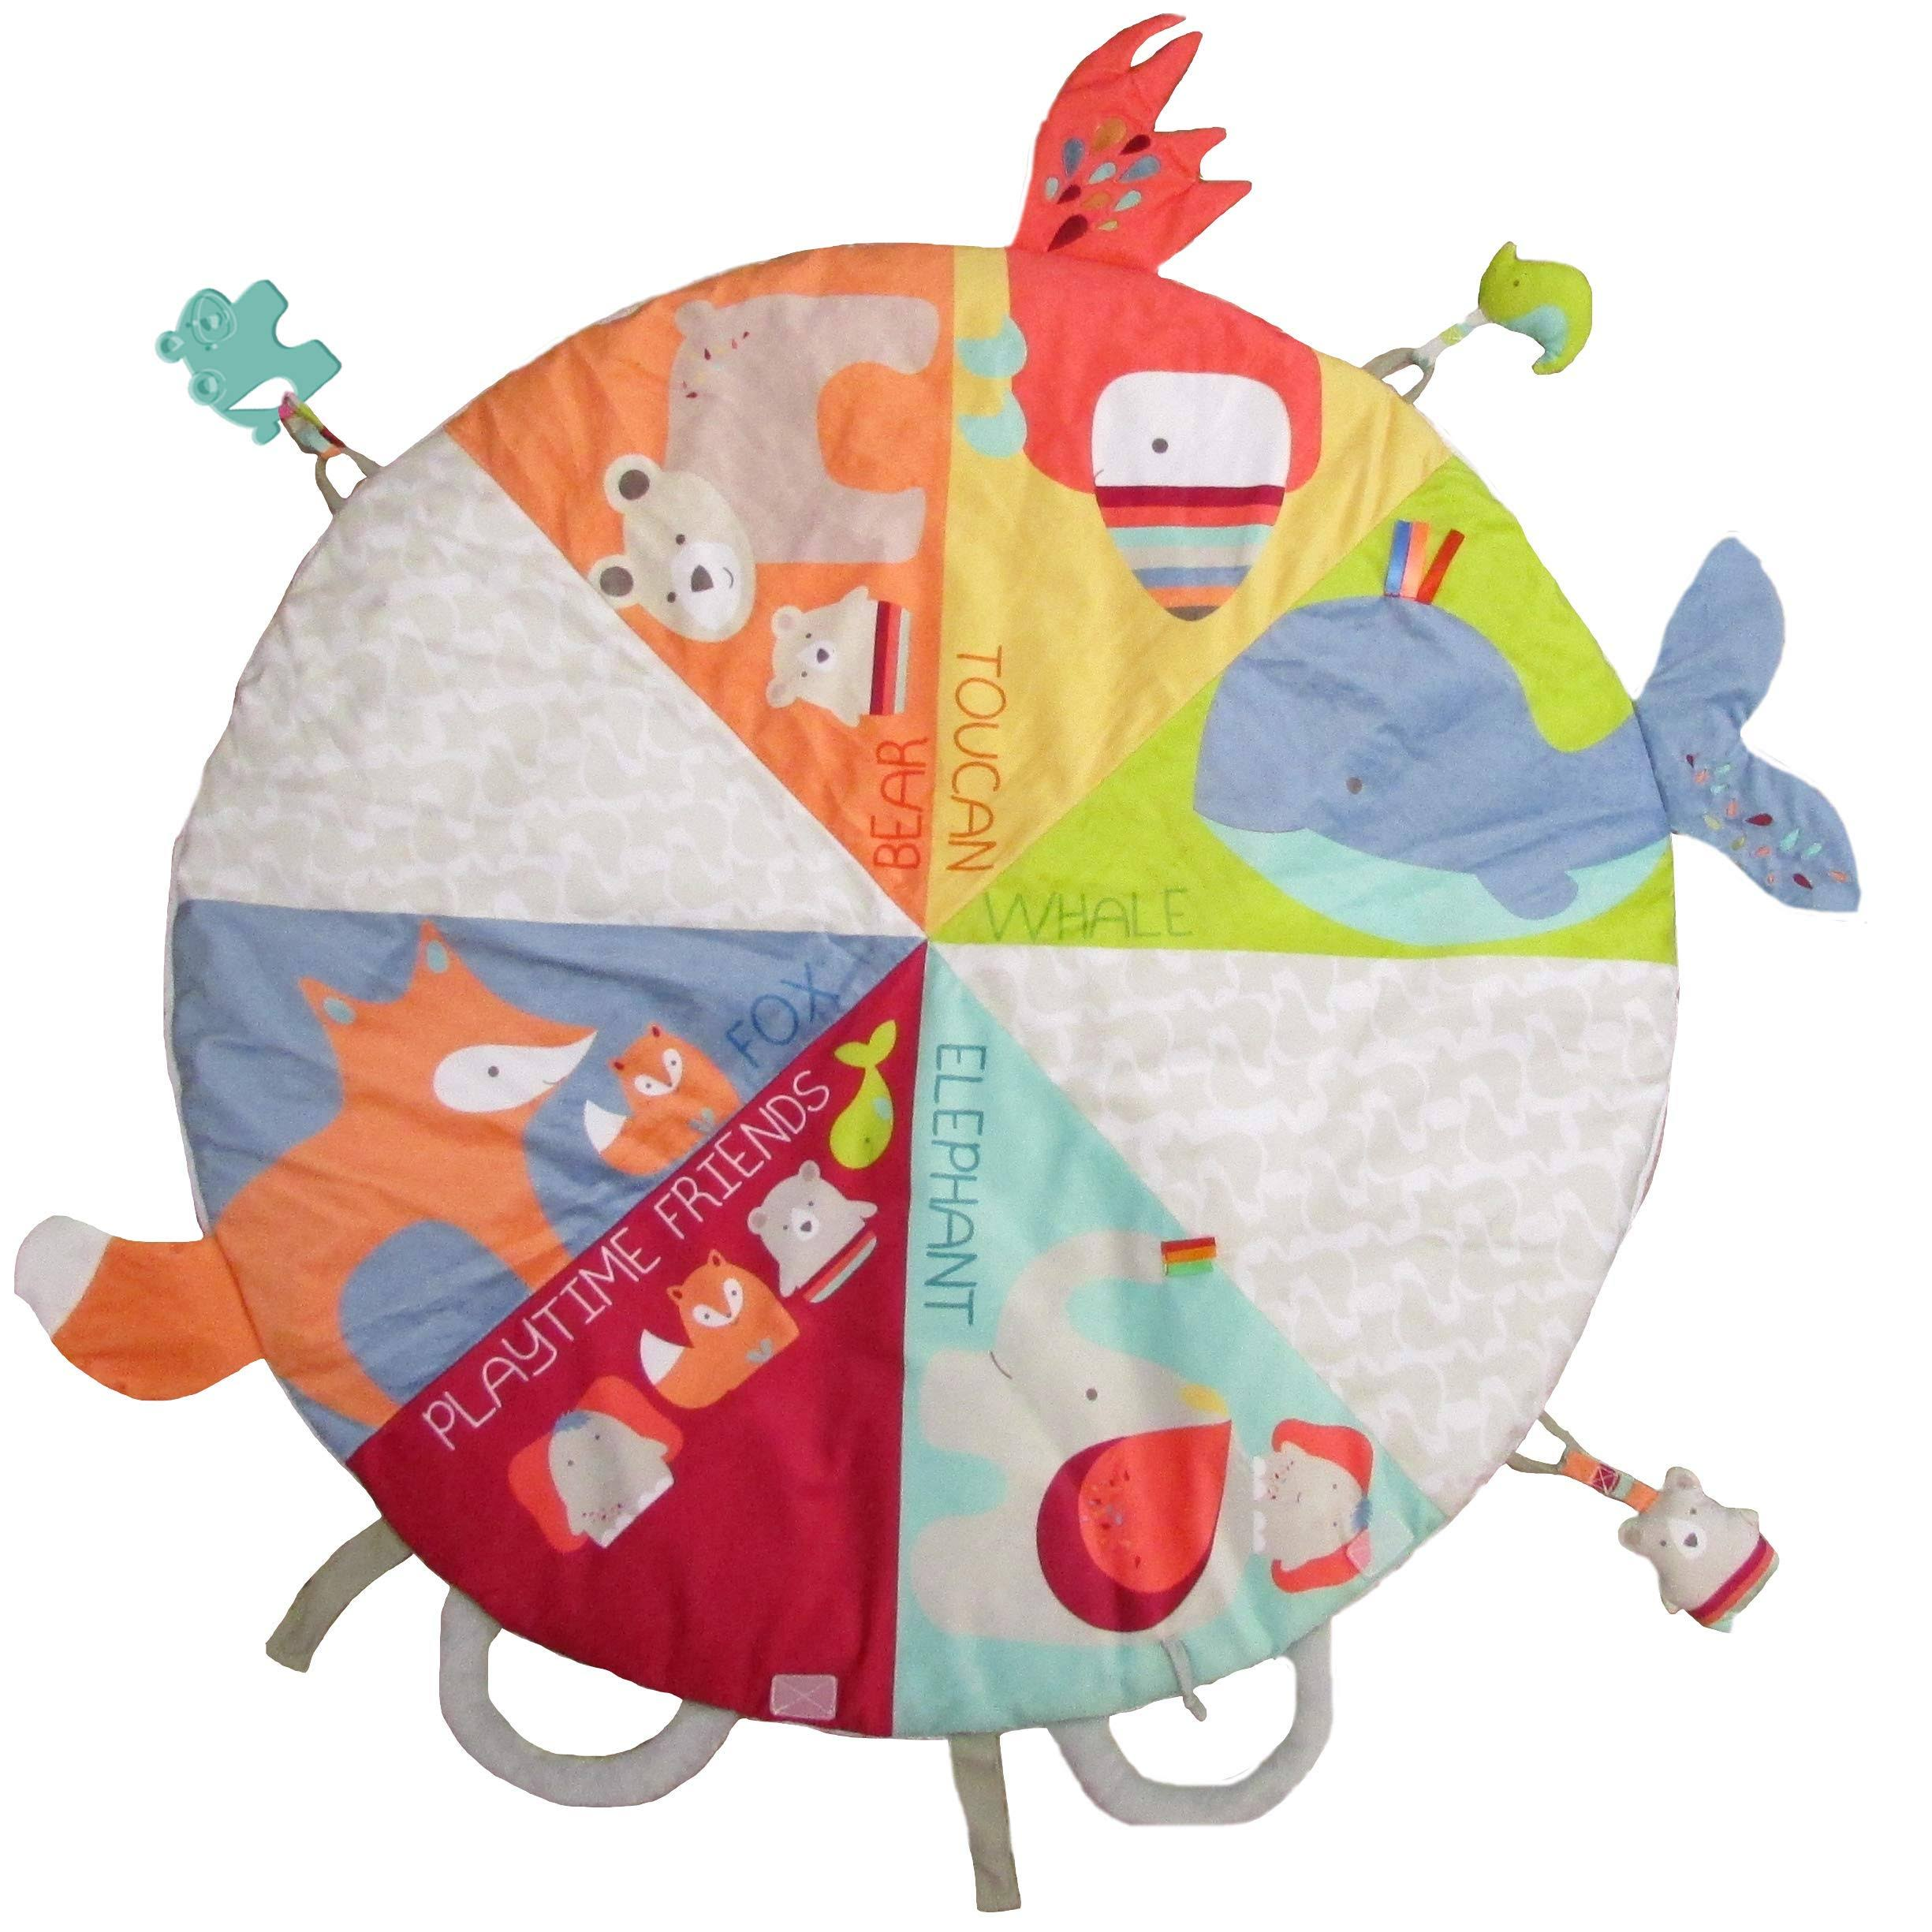 Kids Preferred Rise and Shine Easy On-The-Go Playmat